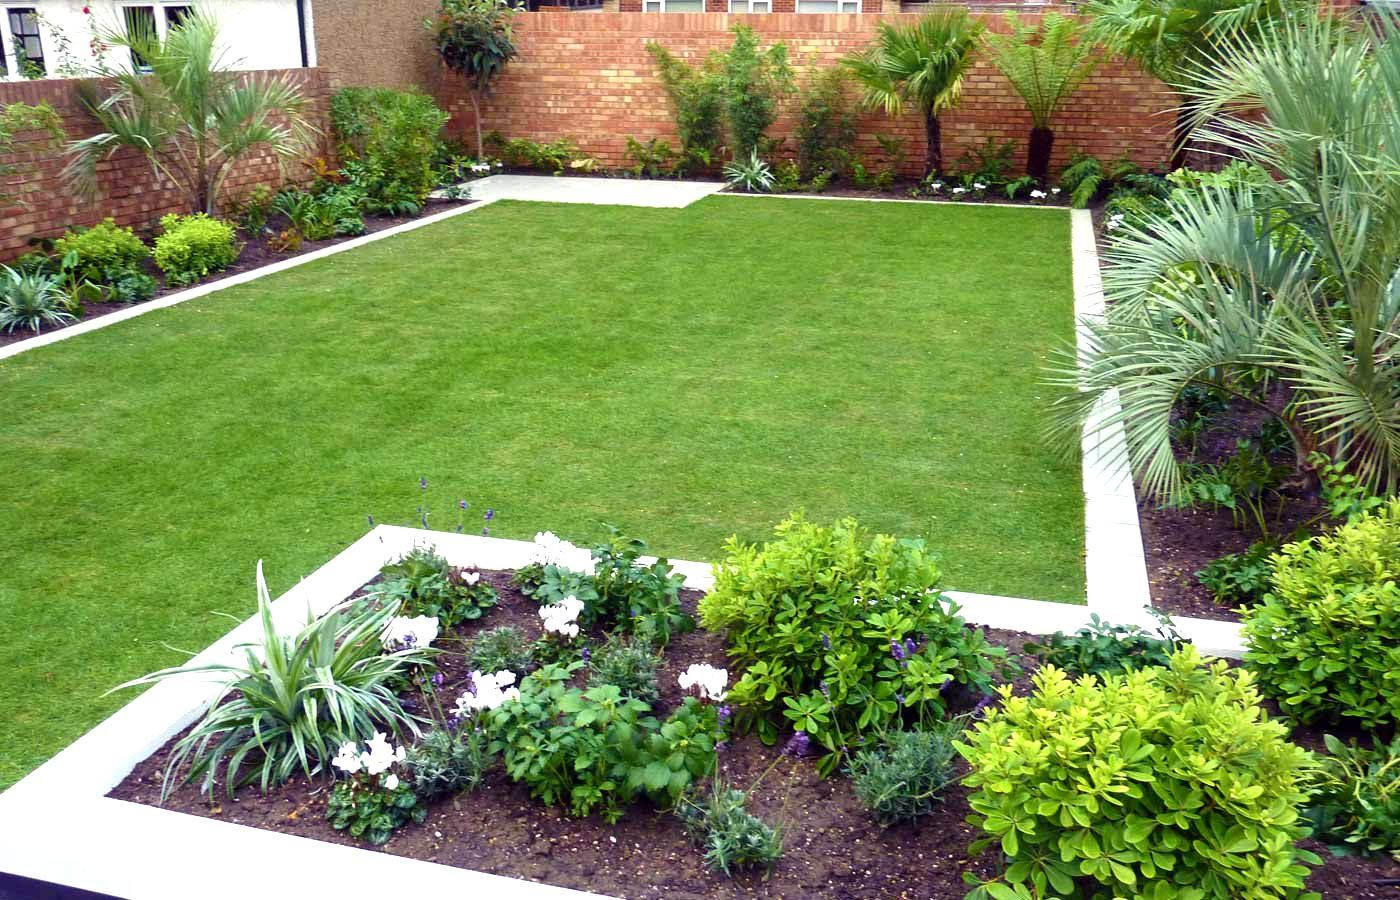 Simple garden designs no fret small garden design for Simple garden landscape ideas